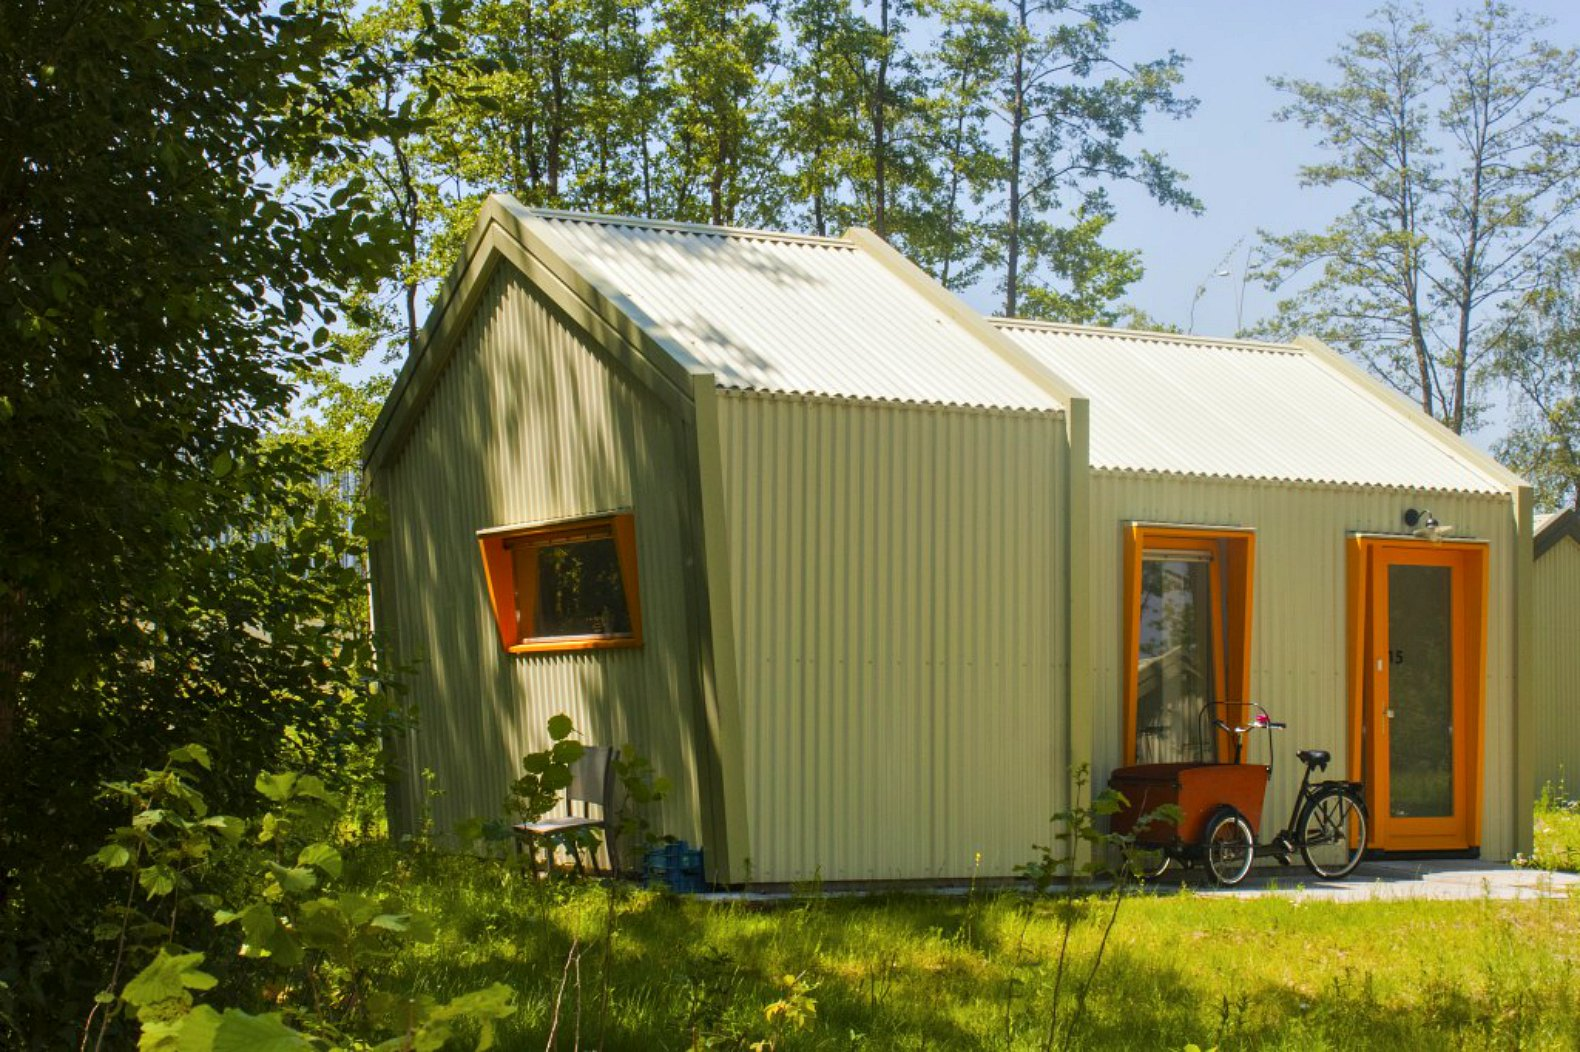 Tiny Home Designs: Studio Elmo Vermijs Designs Tiny House Village For